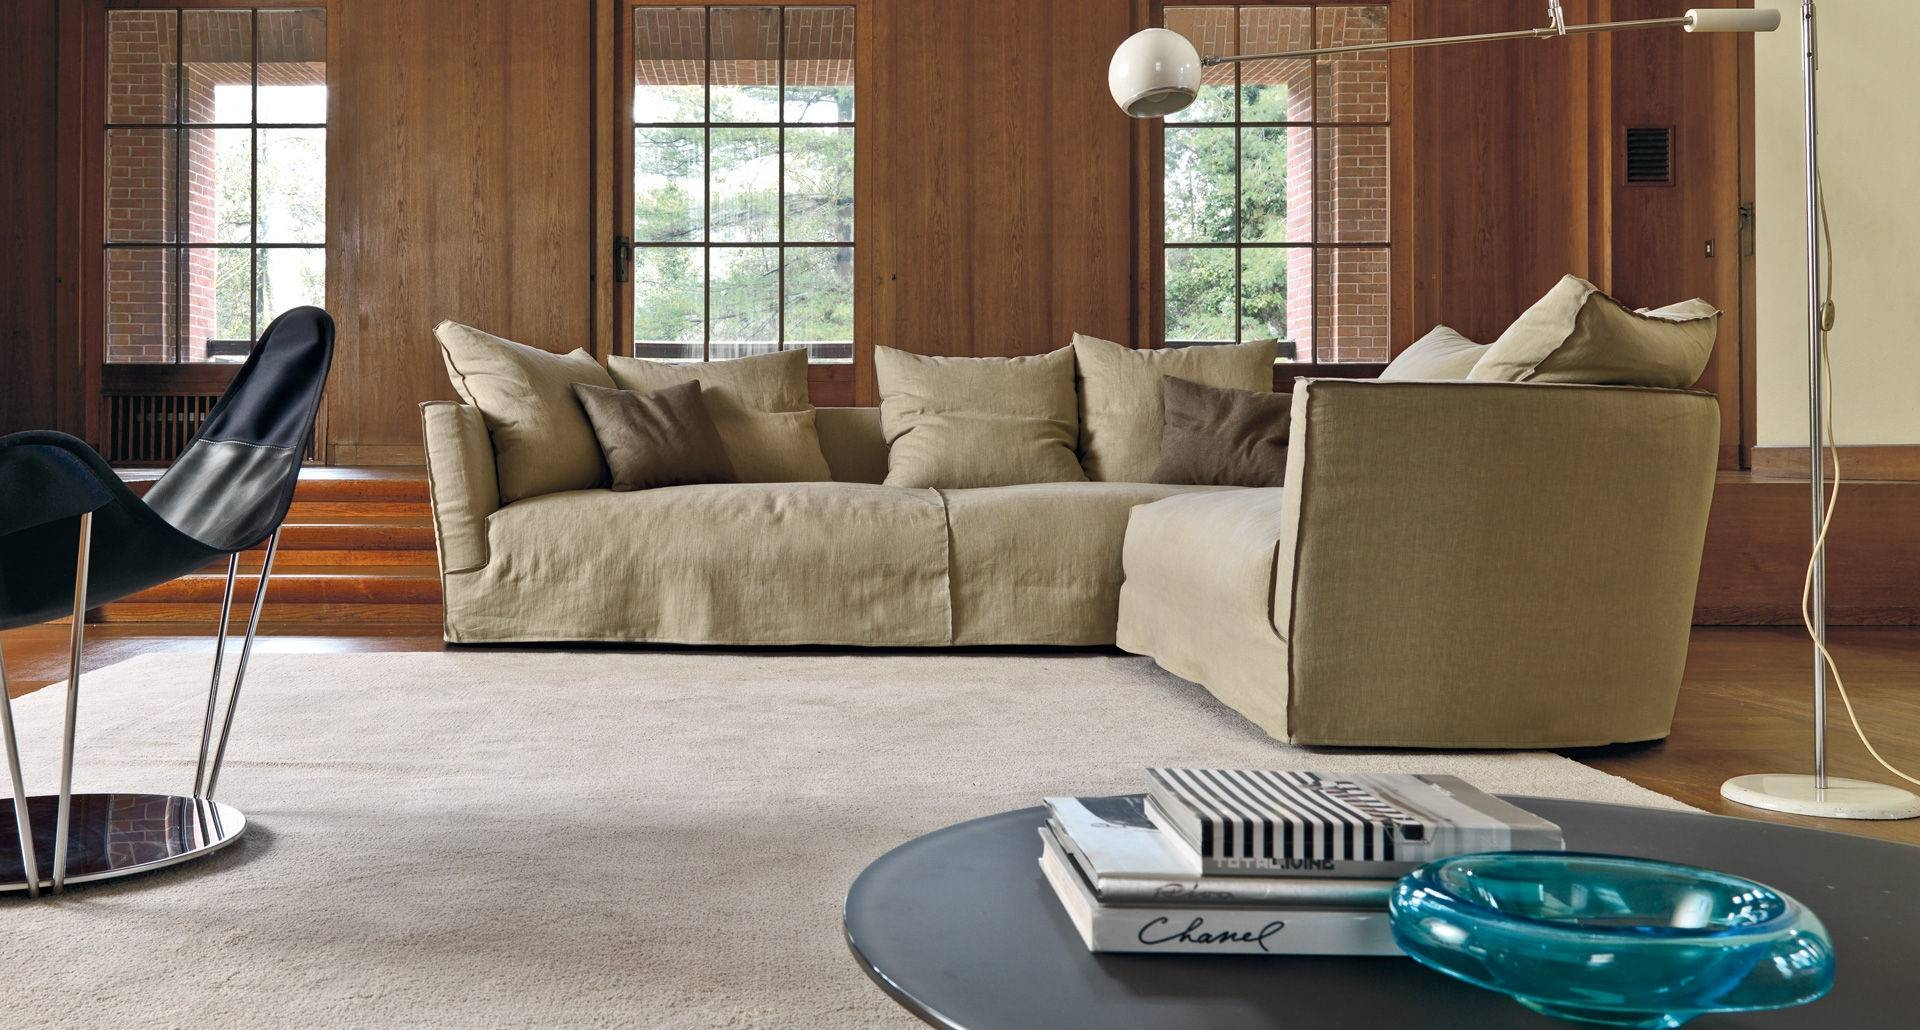 Modular Sofa / Contemporary / Fabric / 4-Seater - Lov Trend in Sofa Trend (Image 9 of 25)